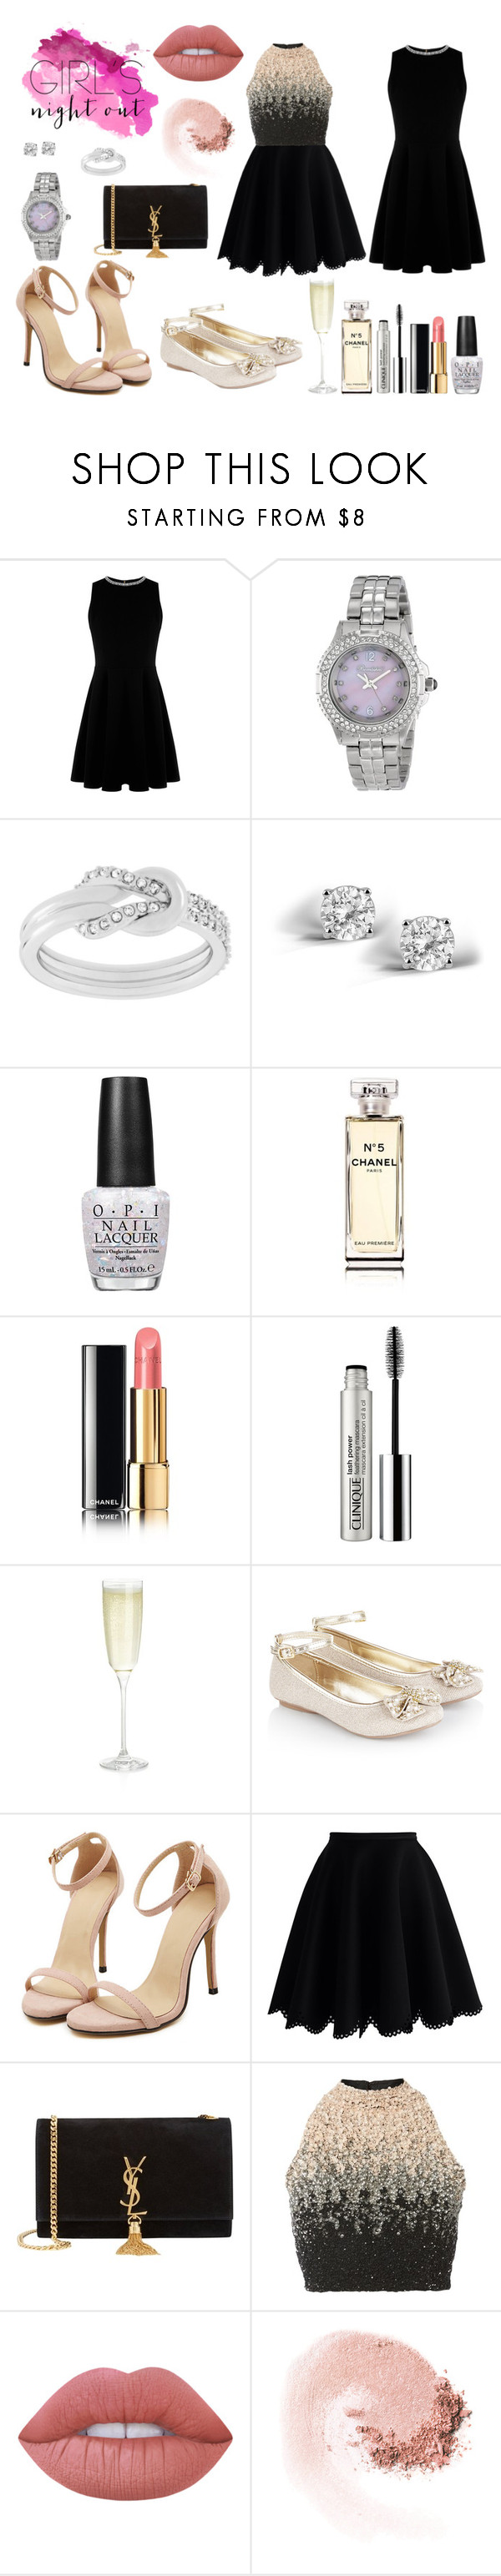 """""""Girls Night Out"""" by lauramacbeath ❤ liked on Polyvore featuring Warehouse, BOMBSHELL, Swarovski, Glitzy Rocks, OPI, Chanel, Clinique, Crate and Barrel, Monsoon and Chicwish"""